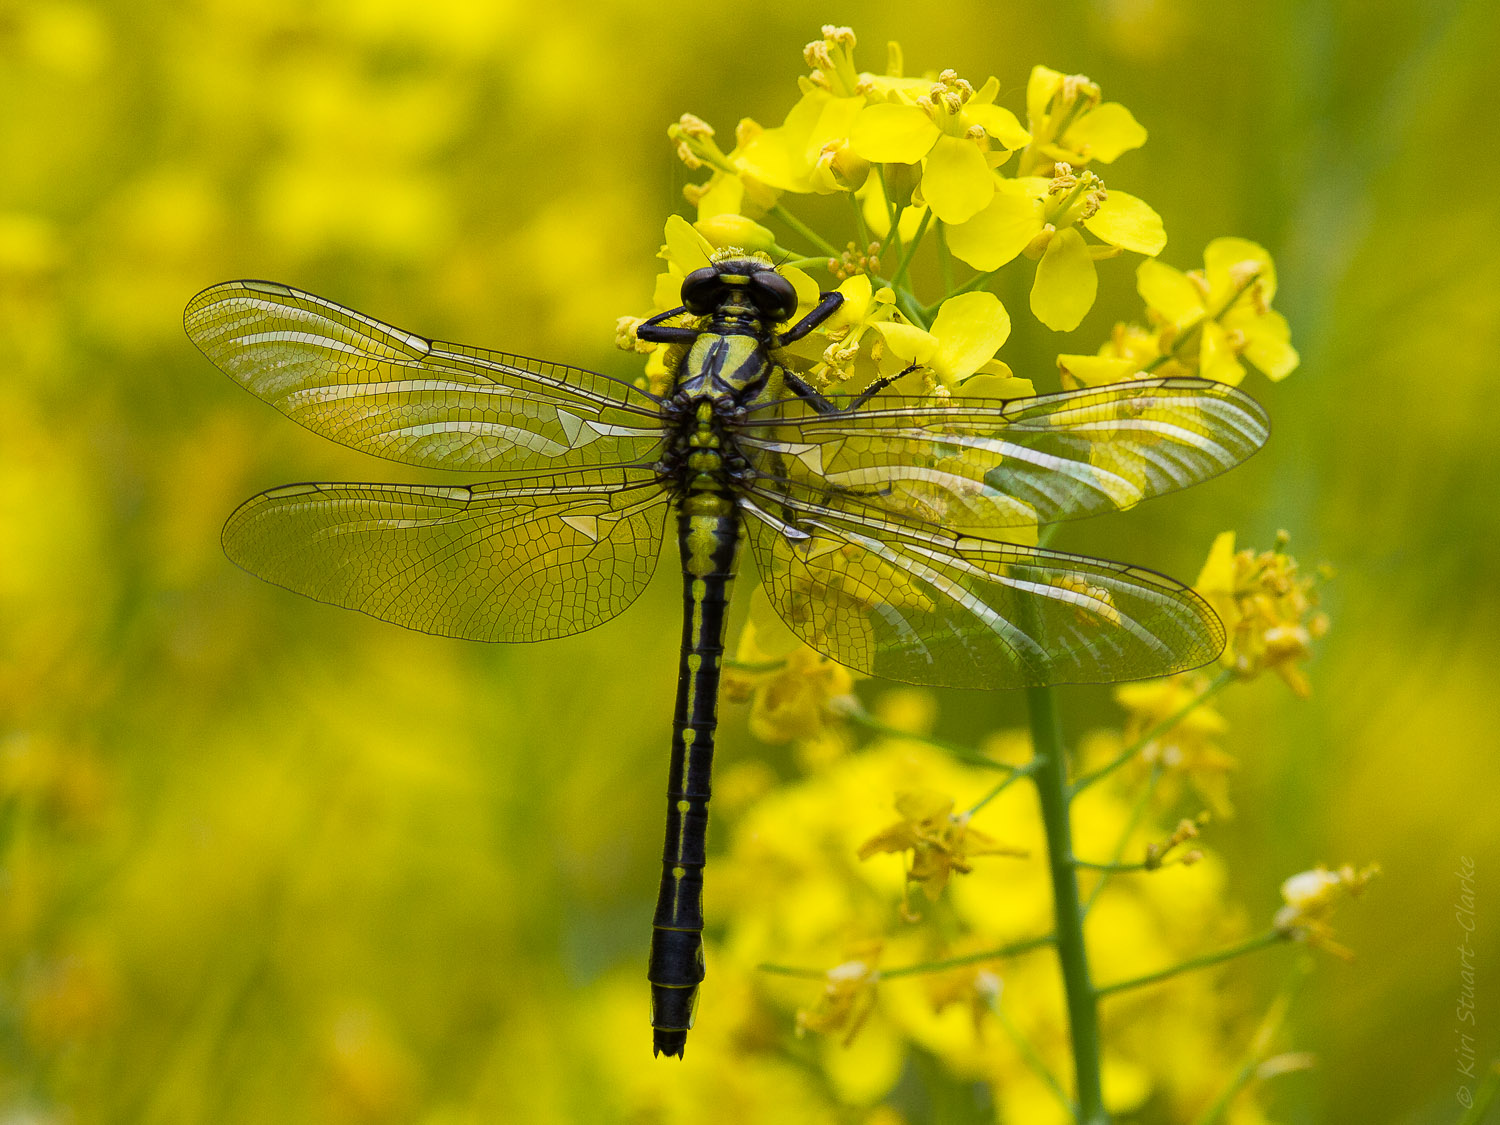 Emerging Dragonfly on Rapeseed